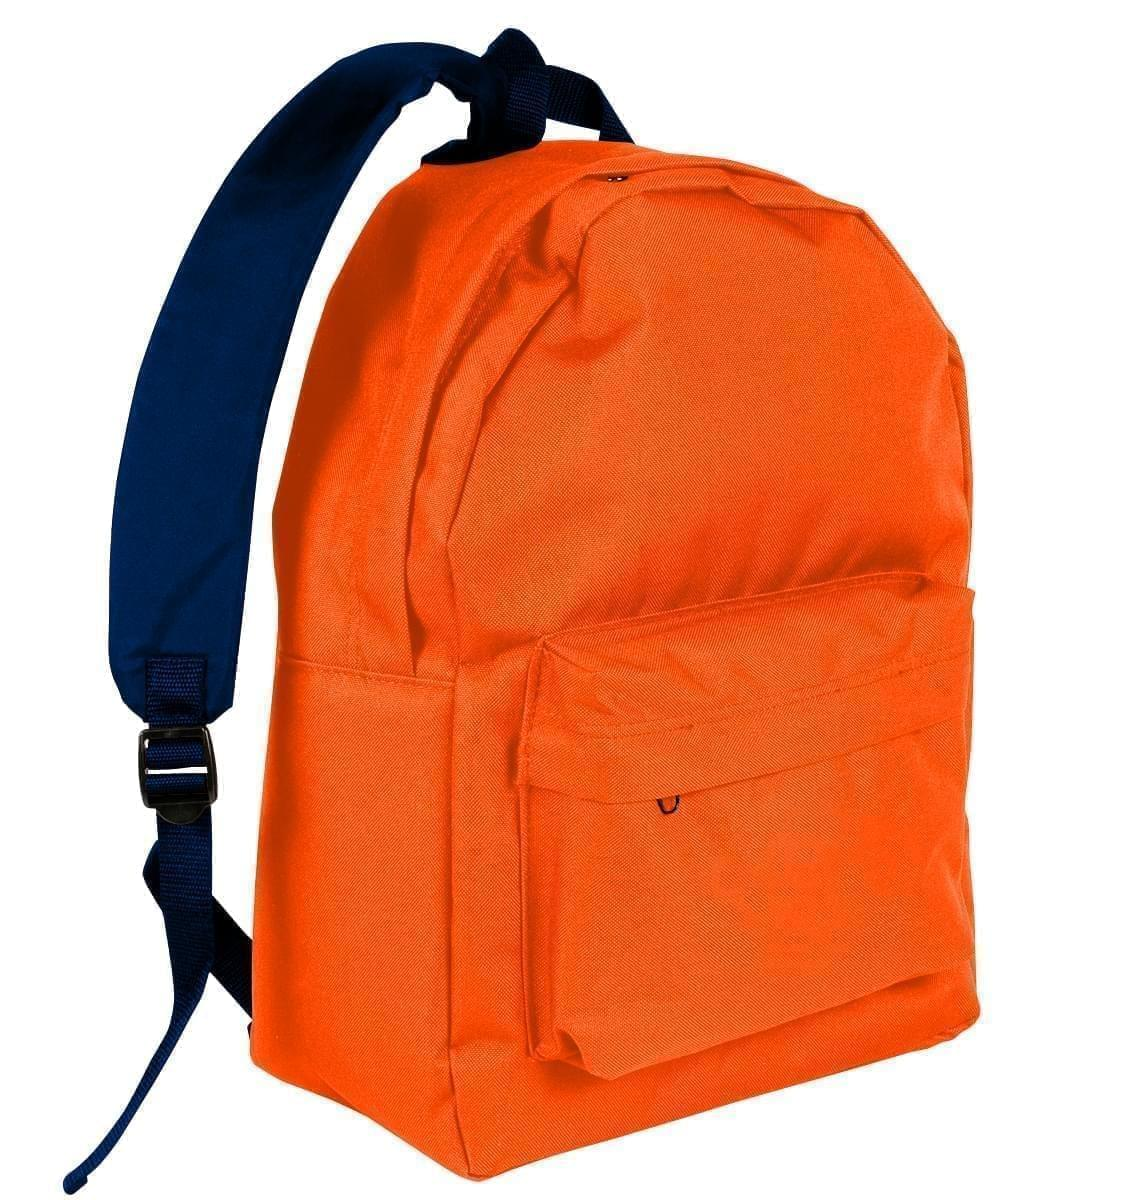 USA Made Nylon Poly Backpack Knapsacks, Orange-Navy, 8960-AXZ